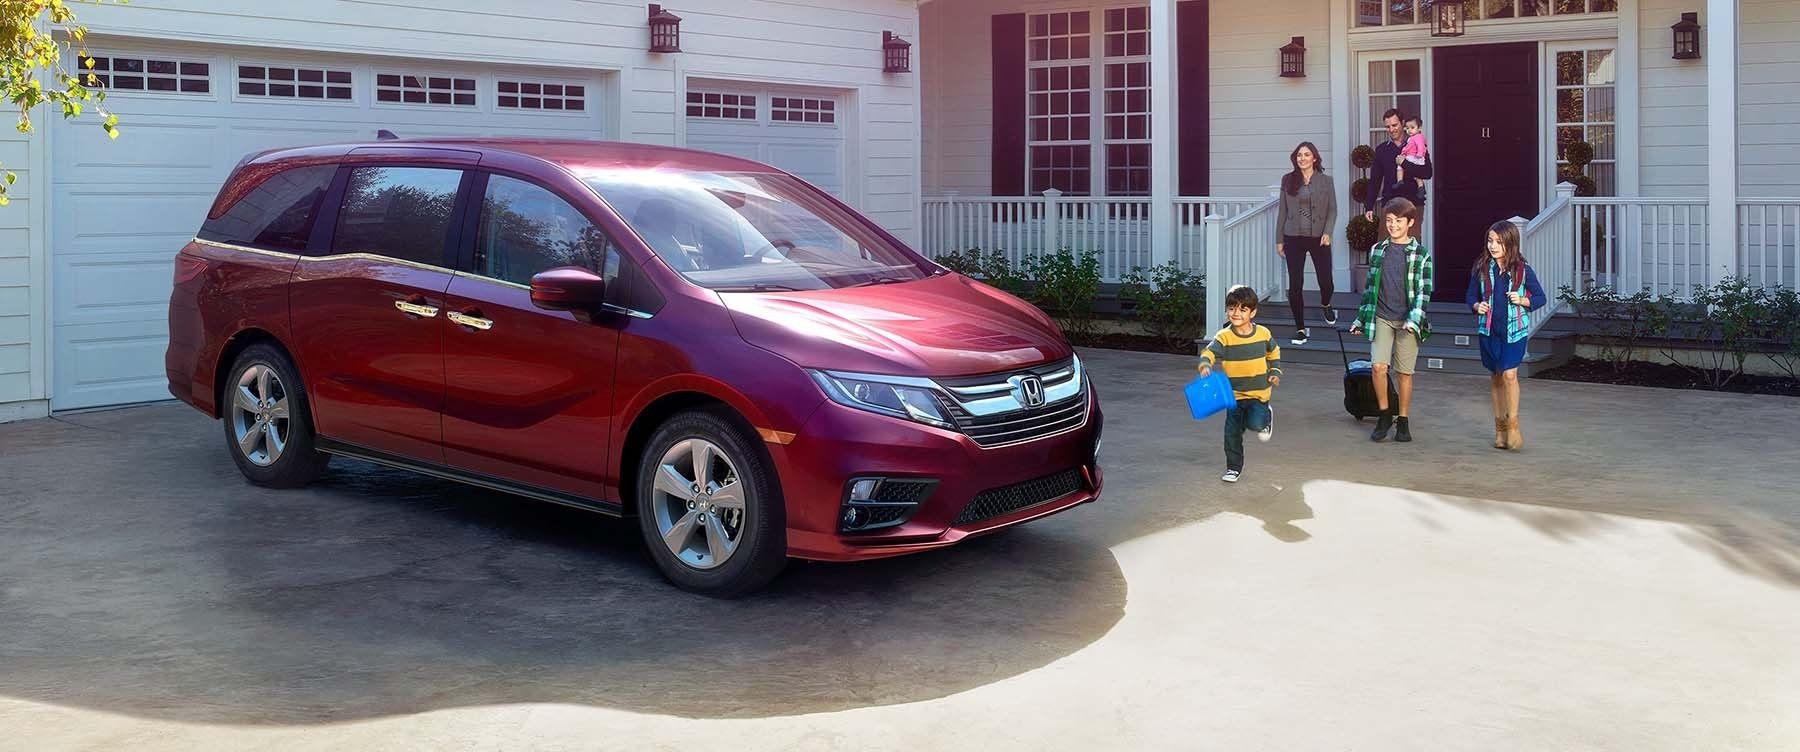 2018 Honda Odyssey outside home with family